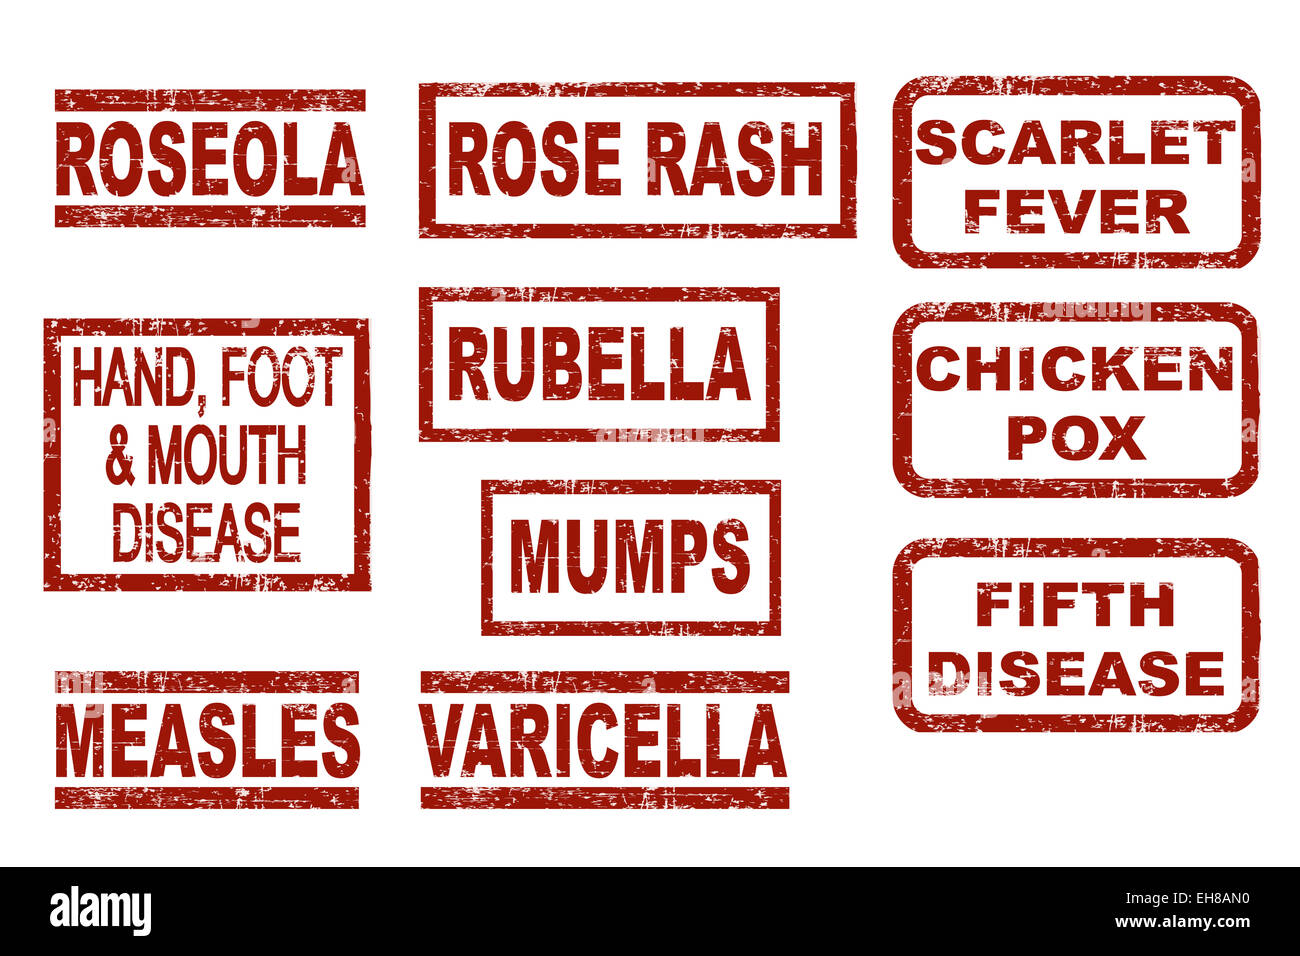 Set of red grunge style ink stamps showing various childhood diseases - Stock Image